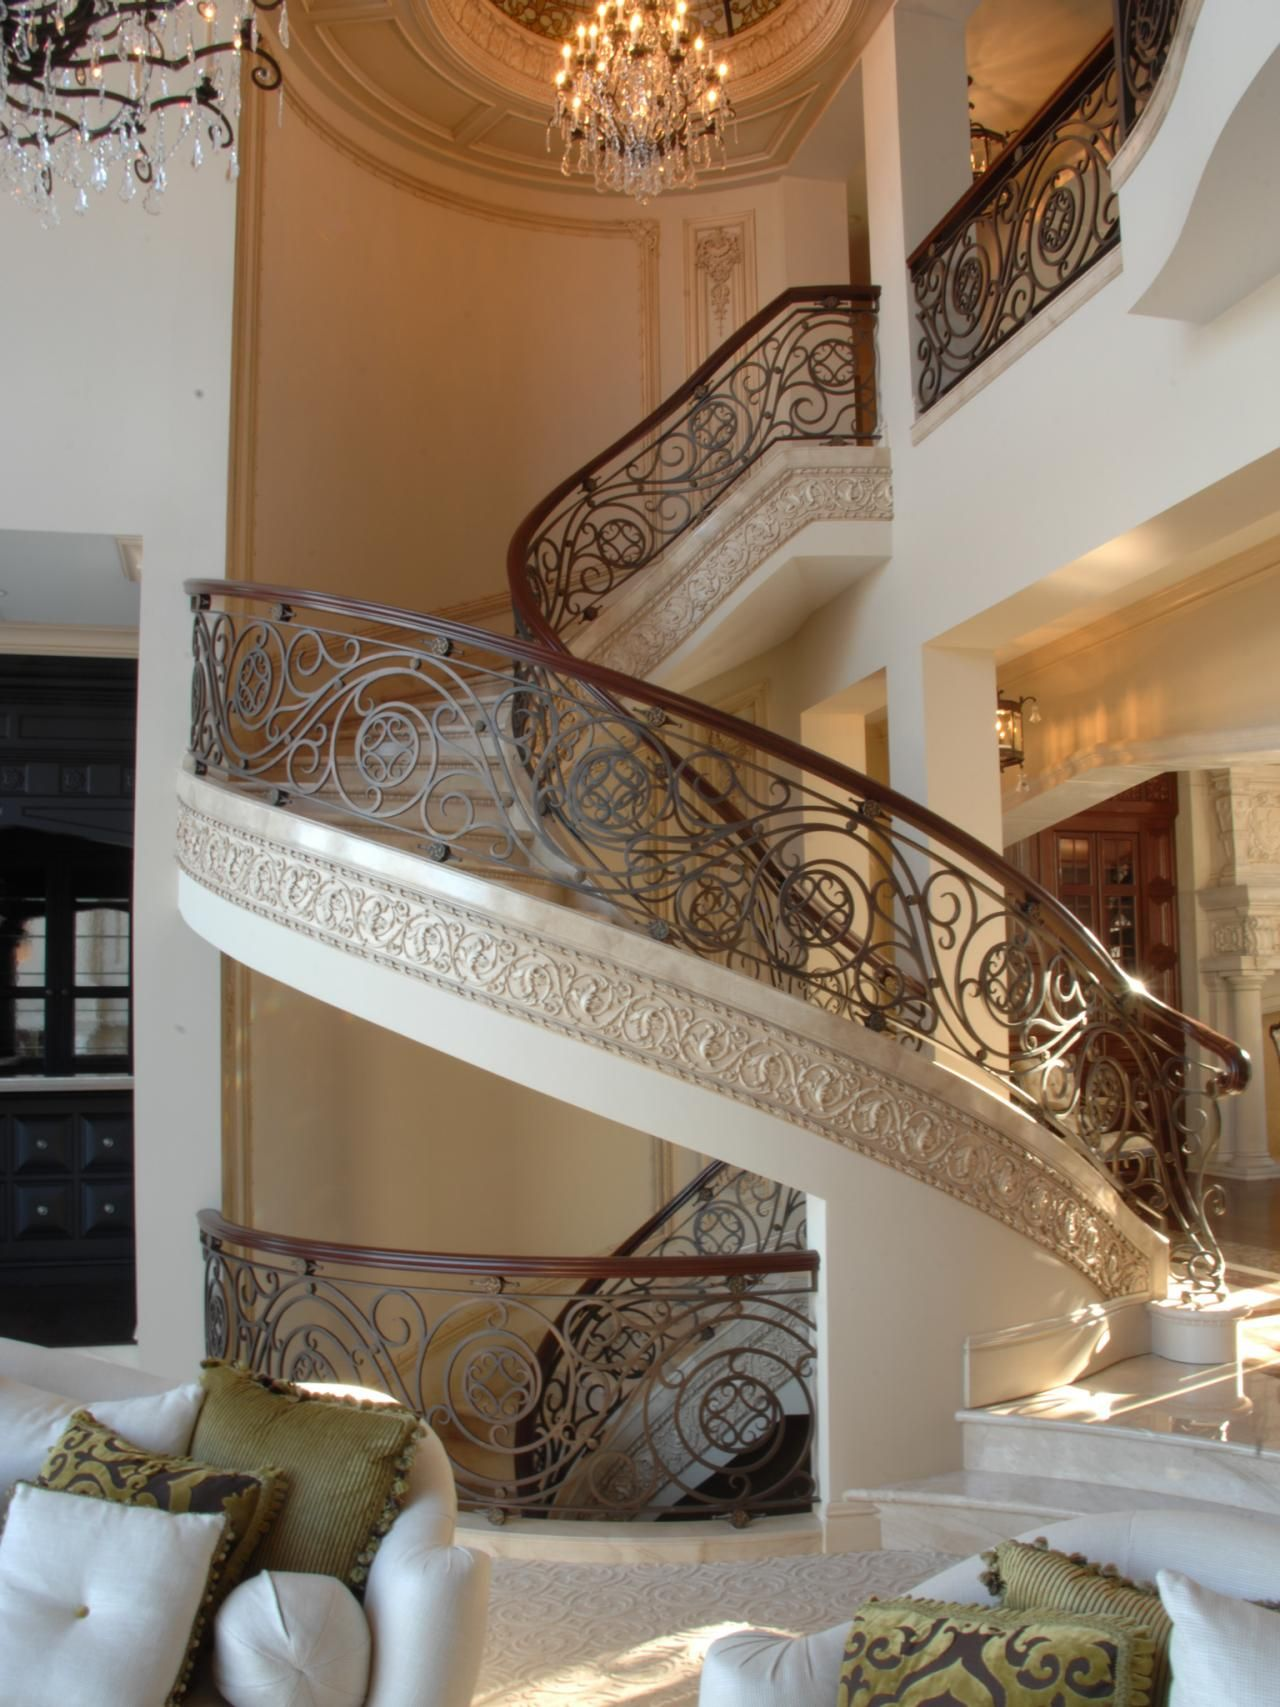 A Carved Circular Staircase In This Custom Built, Estate Size Home Features